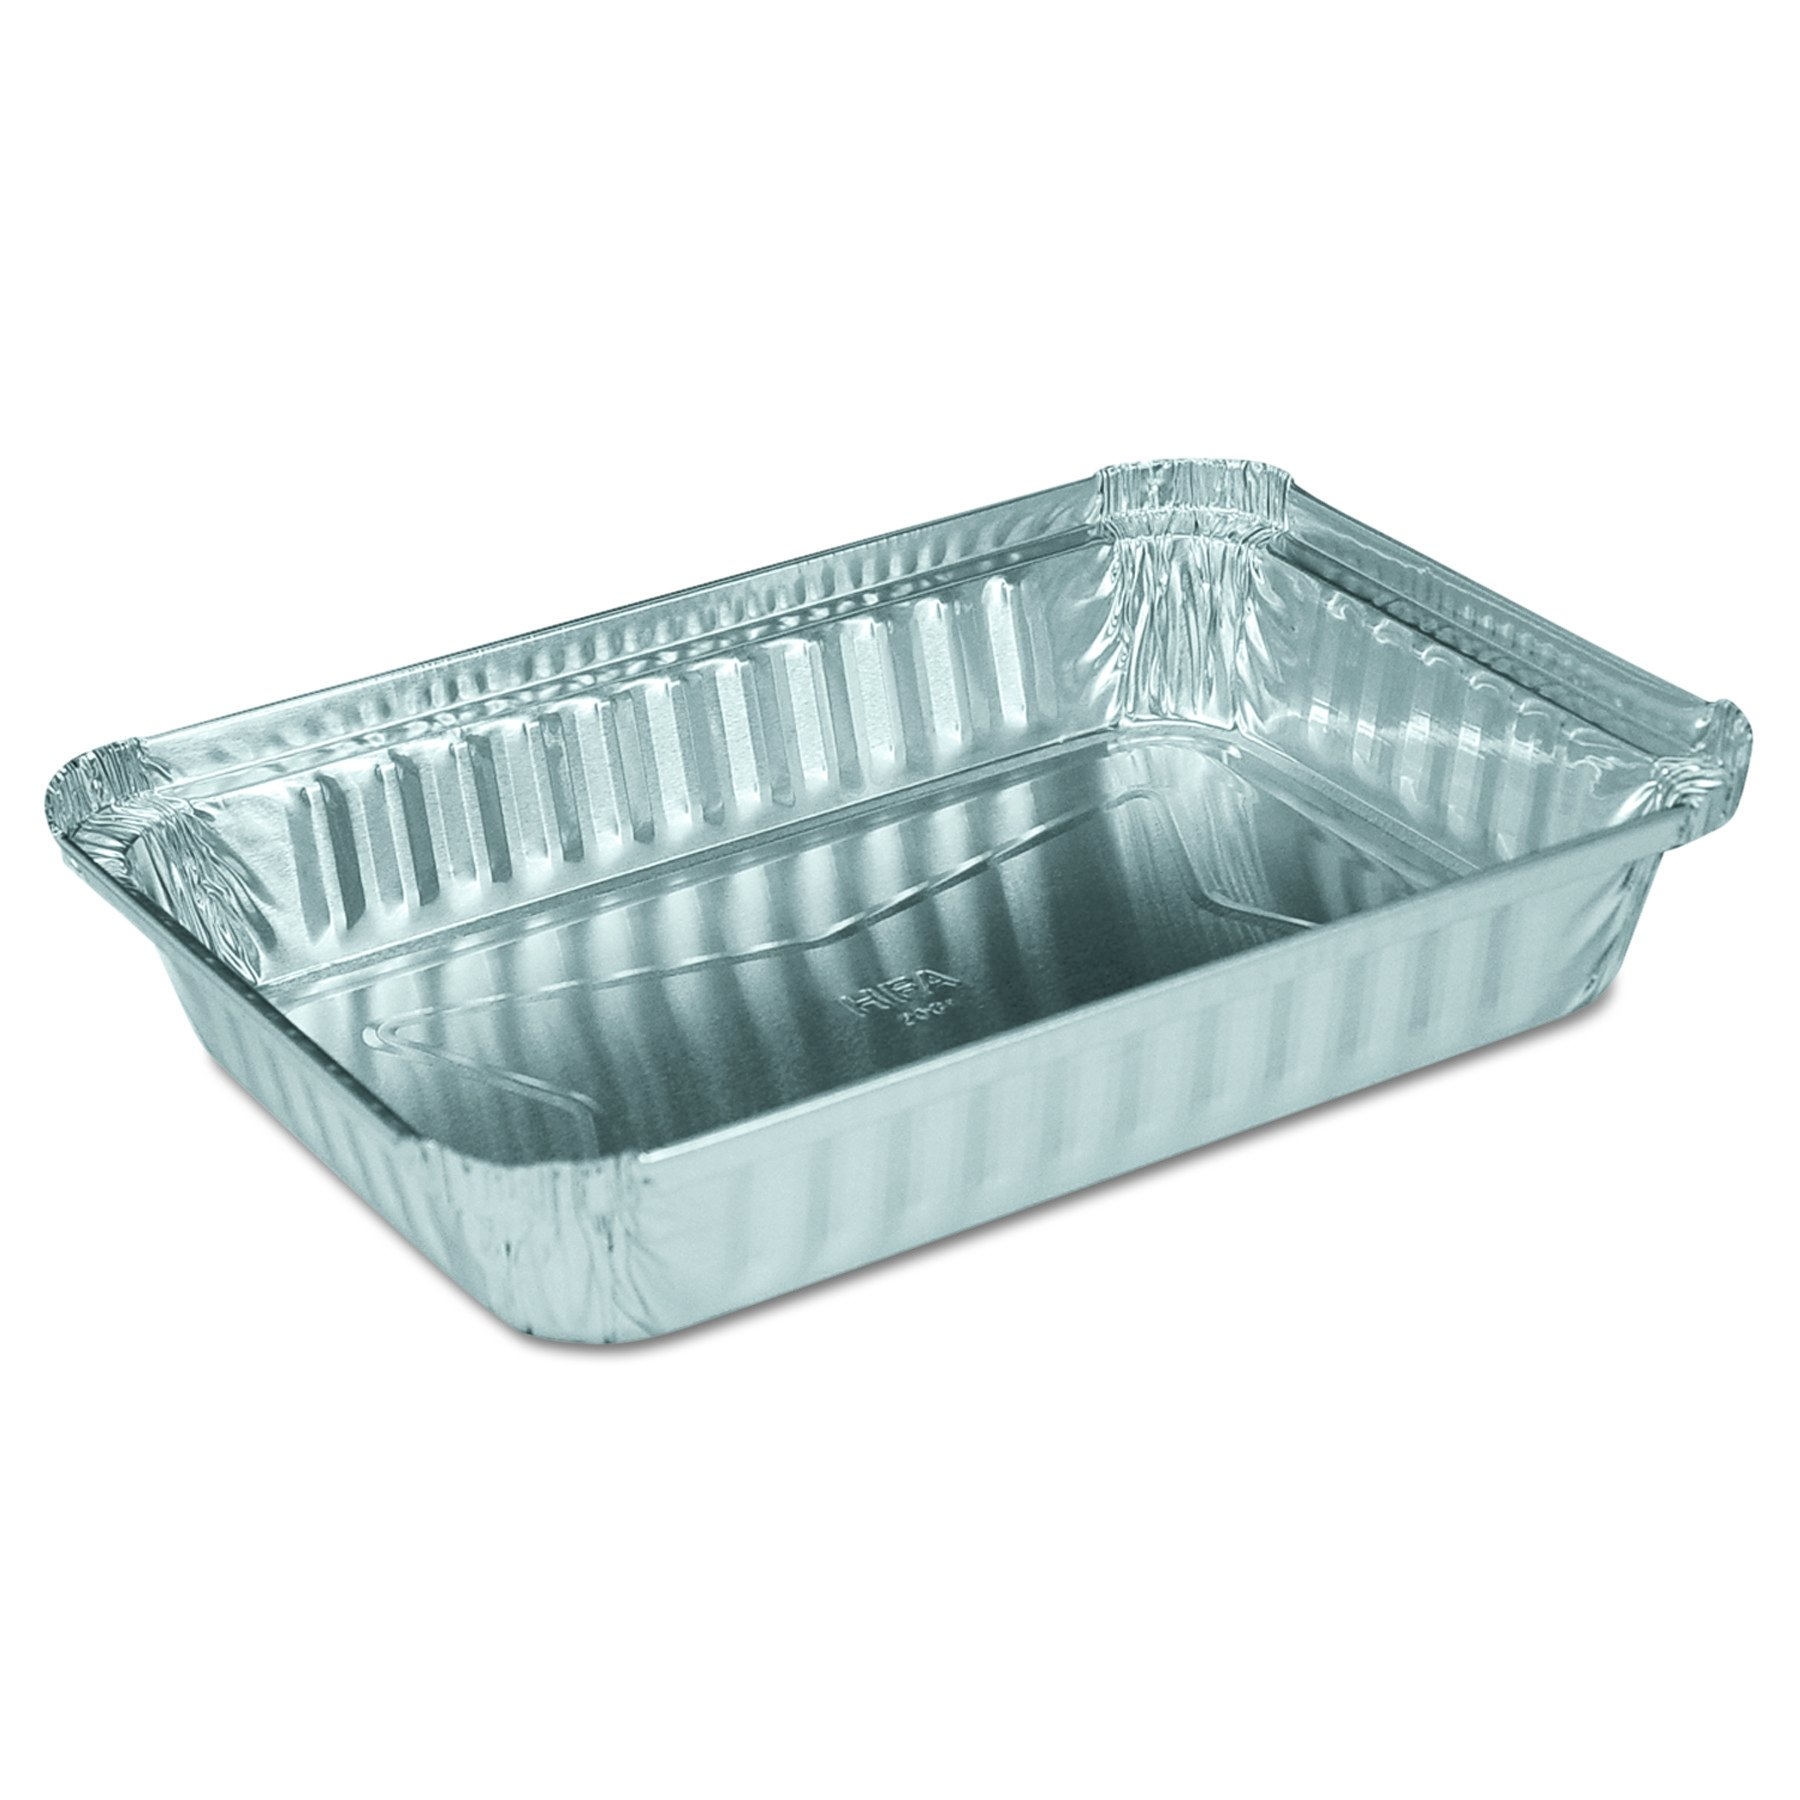 Handi-Foil 206130 8-19/32-Inch Length by 6-Inch Width by 1-1/4-Inch Depth 1.5 lbs Oblong Aluminum Container (Case of 500)